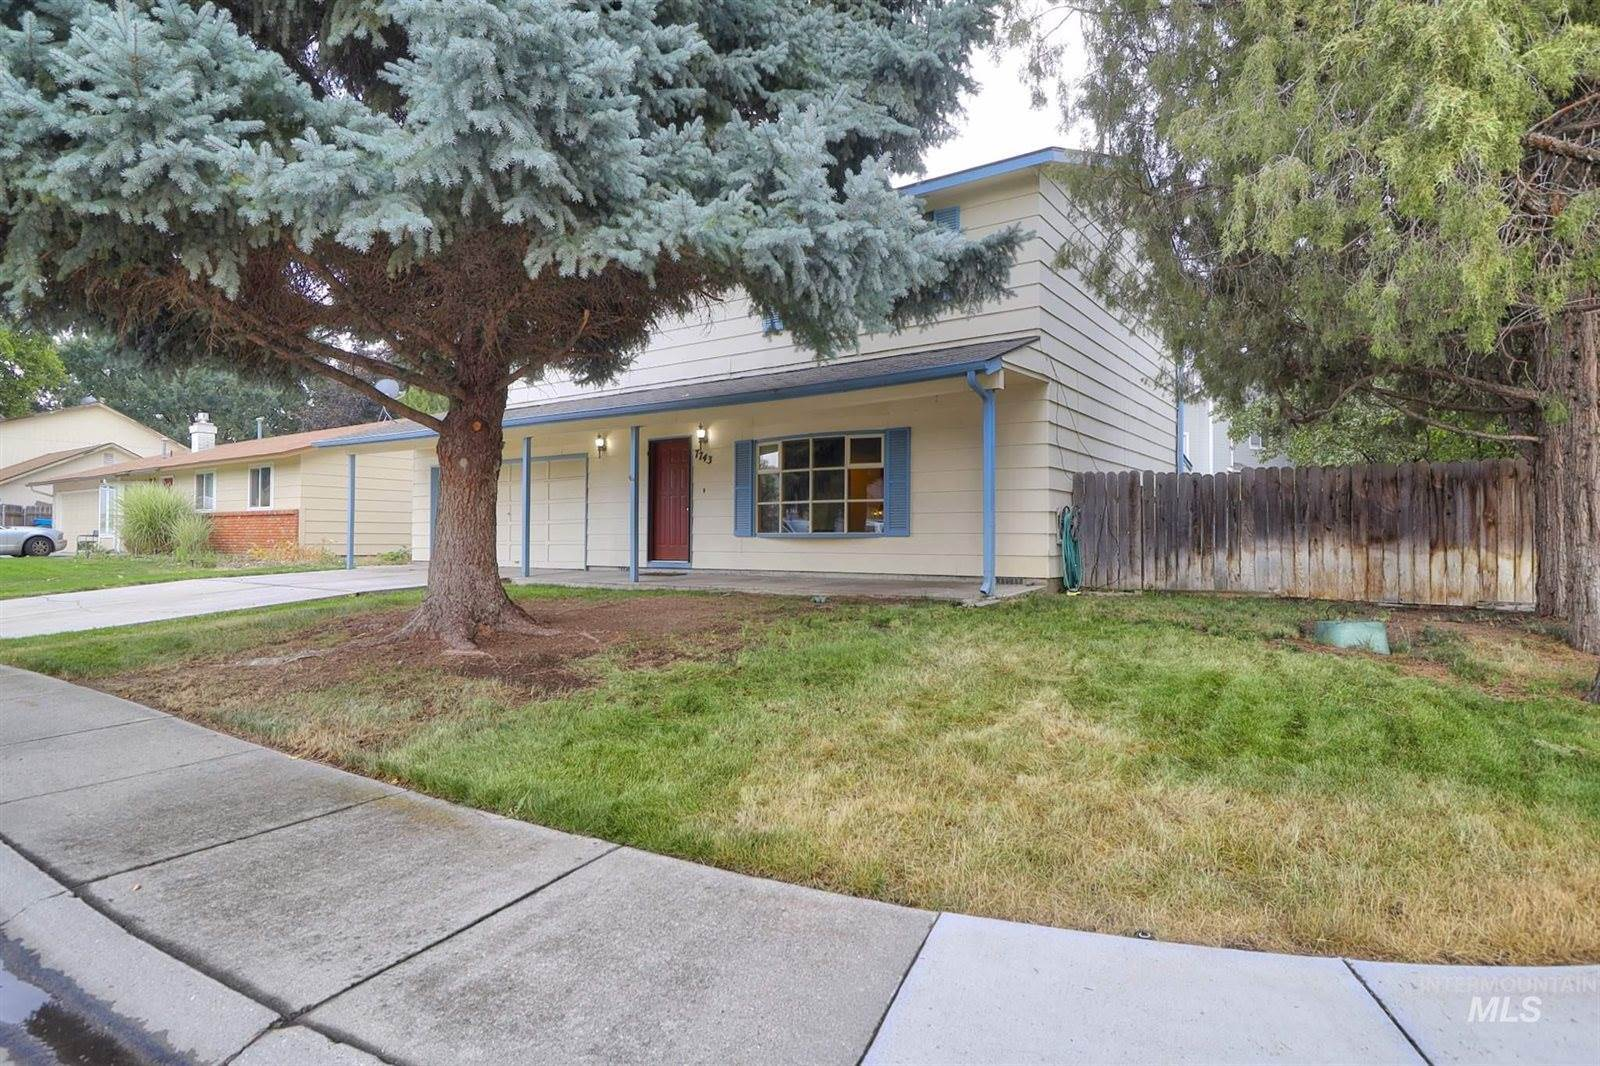 7743 West Iron Court, Boise, ID 83704